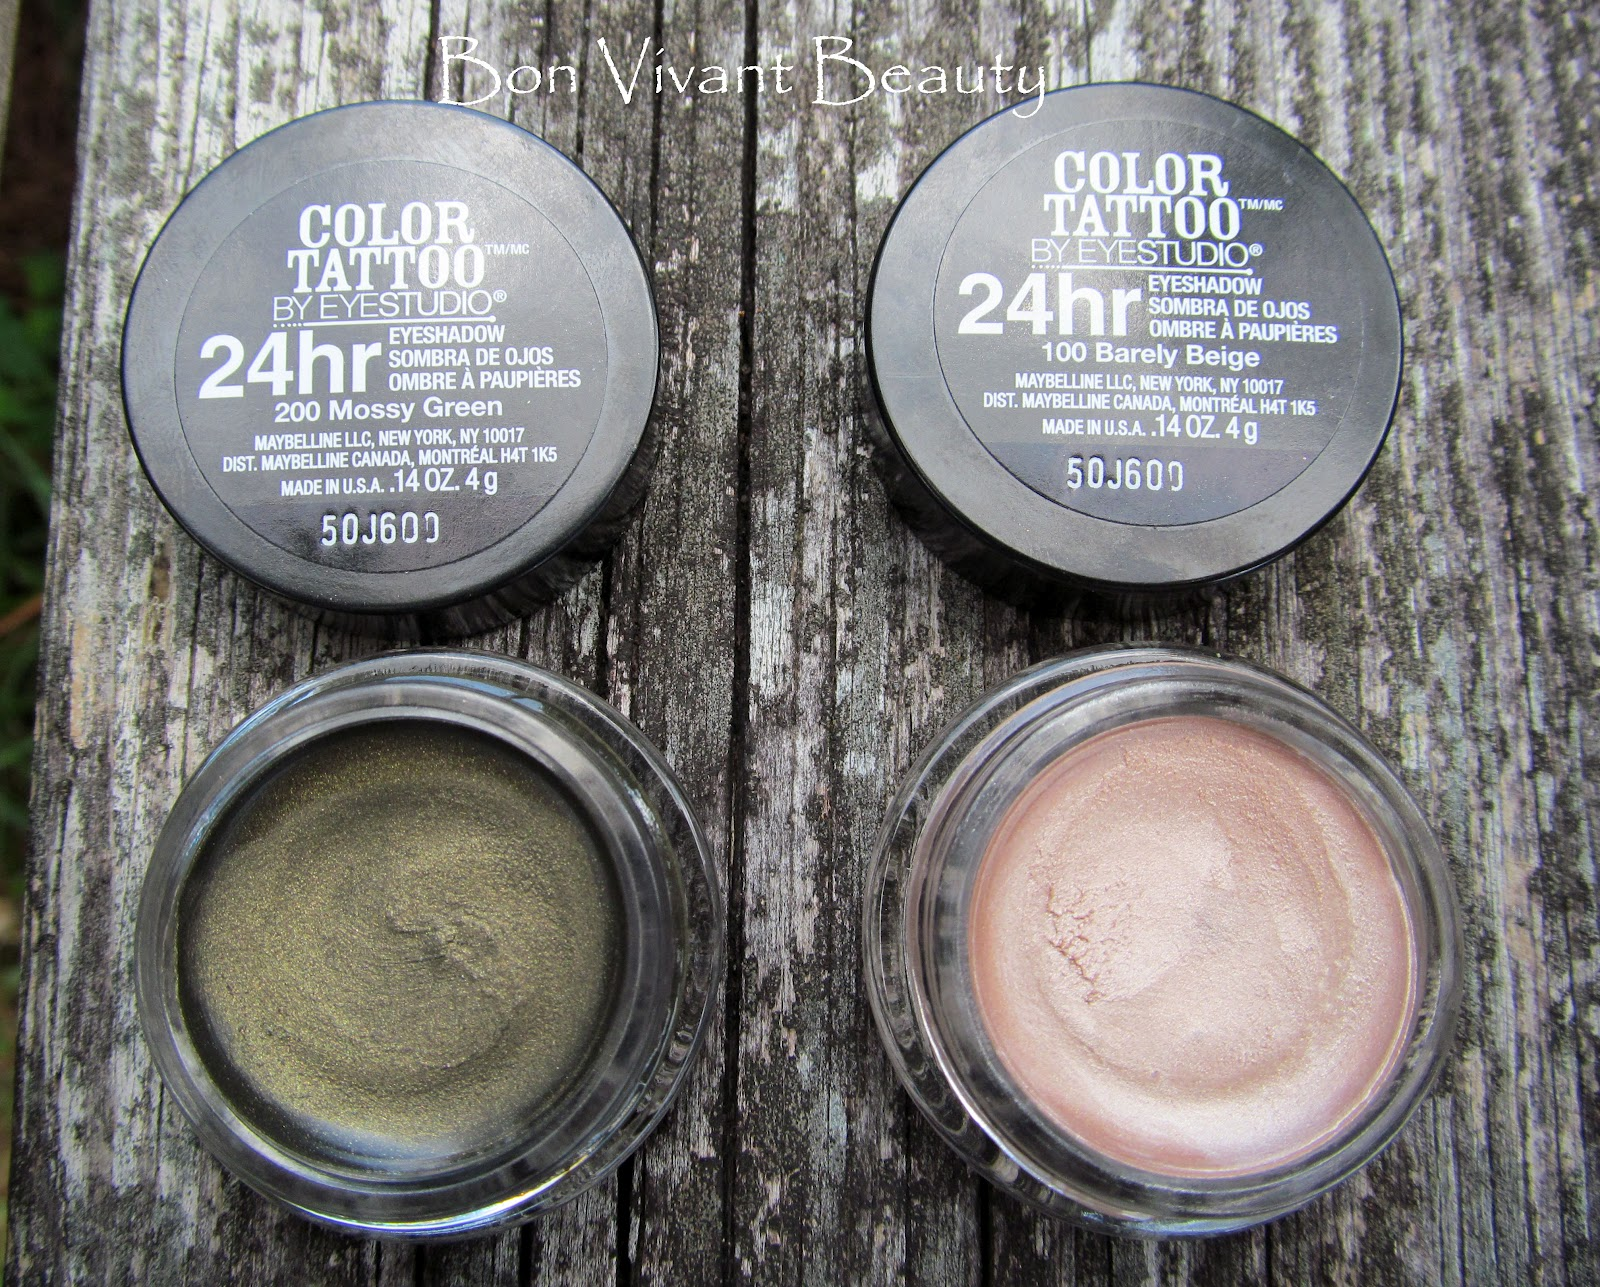 Maybelline Le Color Tattoo Eyeshadows In Barely Beige And Mossy Green